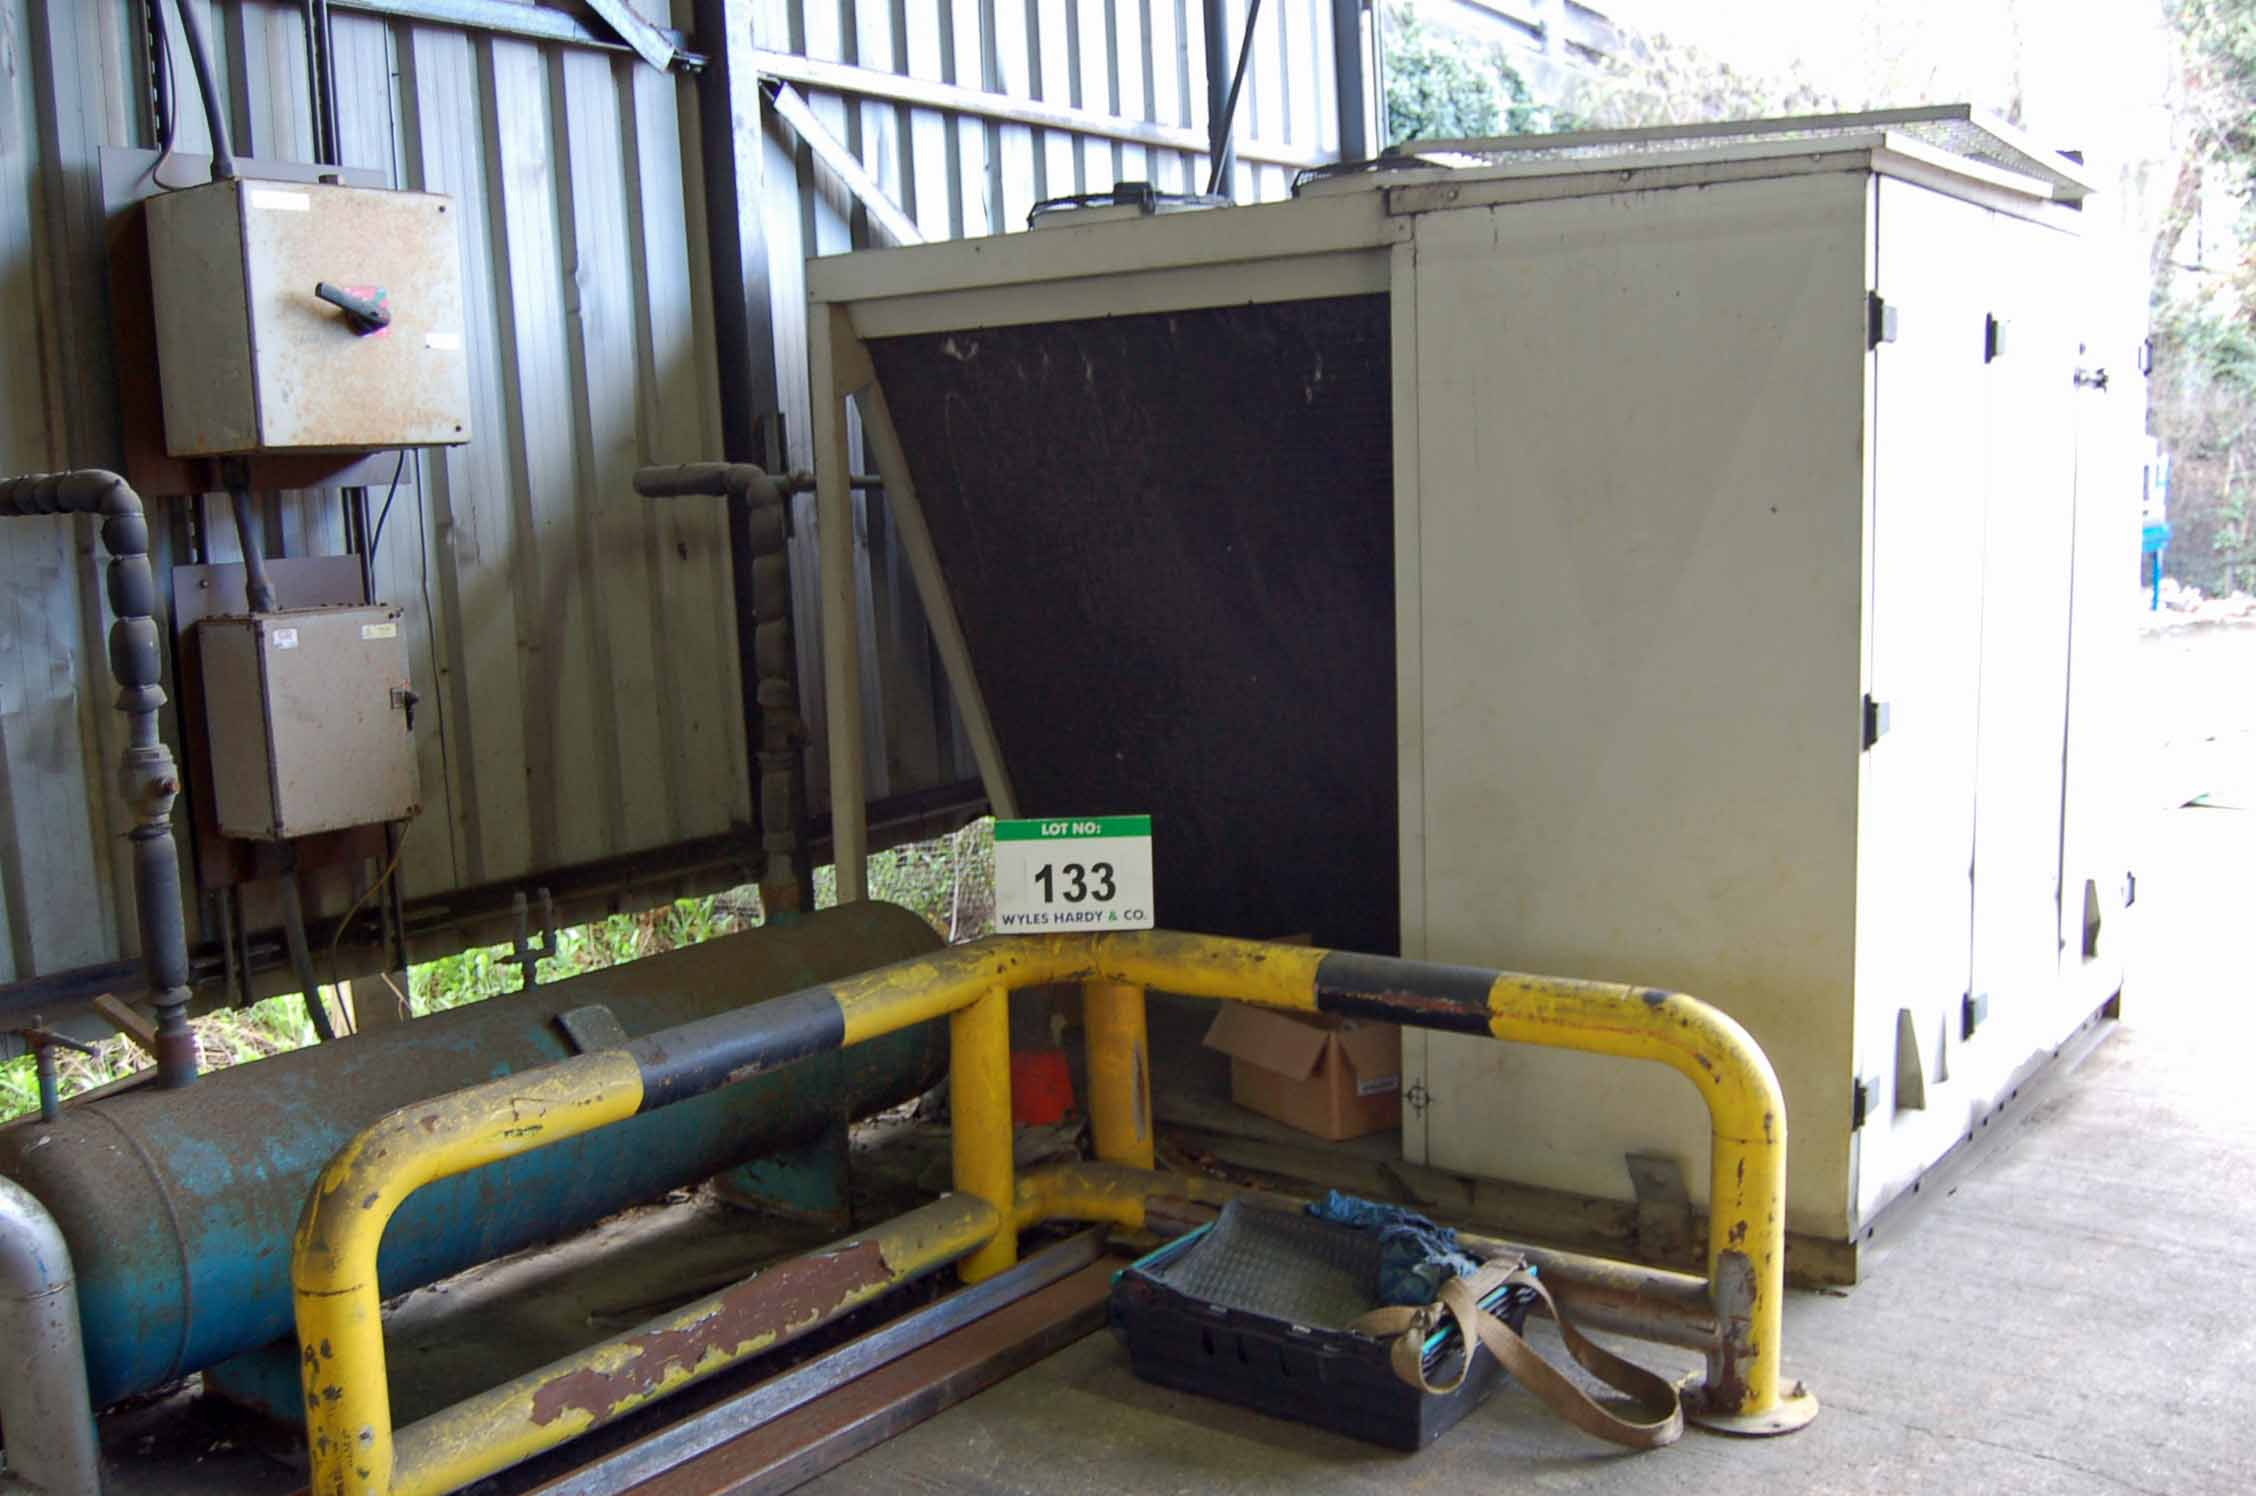 Lot 133 - A HANS GUNTNER S-GVDG052/2 4-Fan Chiller Condenser, Serial No. 100/152061.1 (Year 2003) (THIS LOT IS